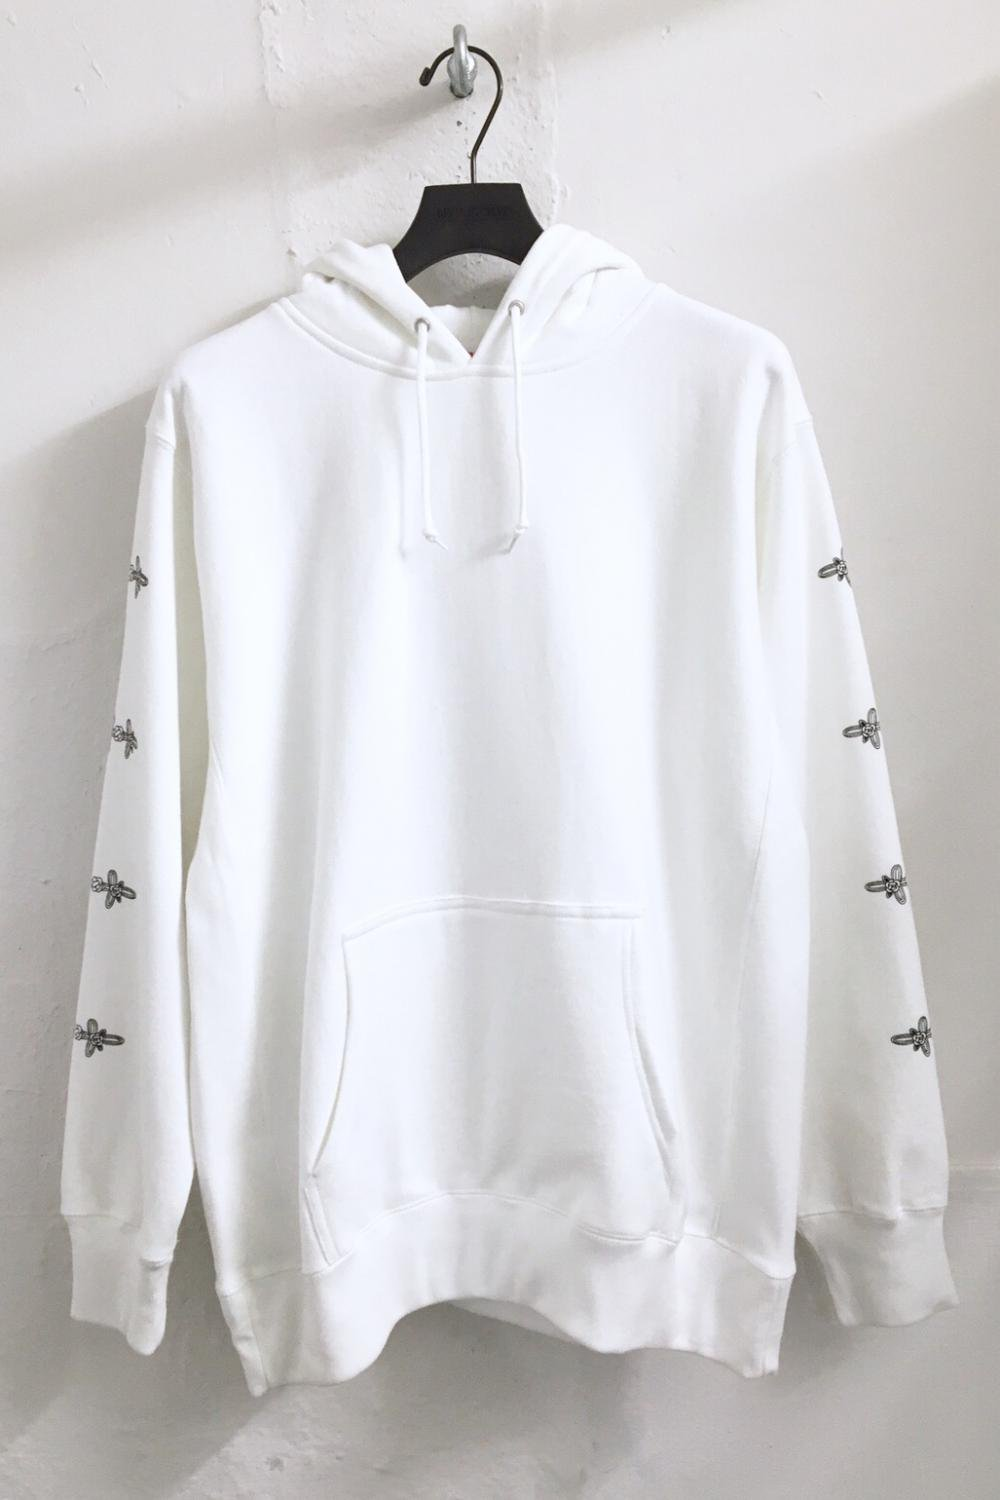 CHINA BUTTON<br />HOODIE<br />WH / GY / BK